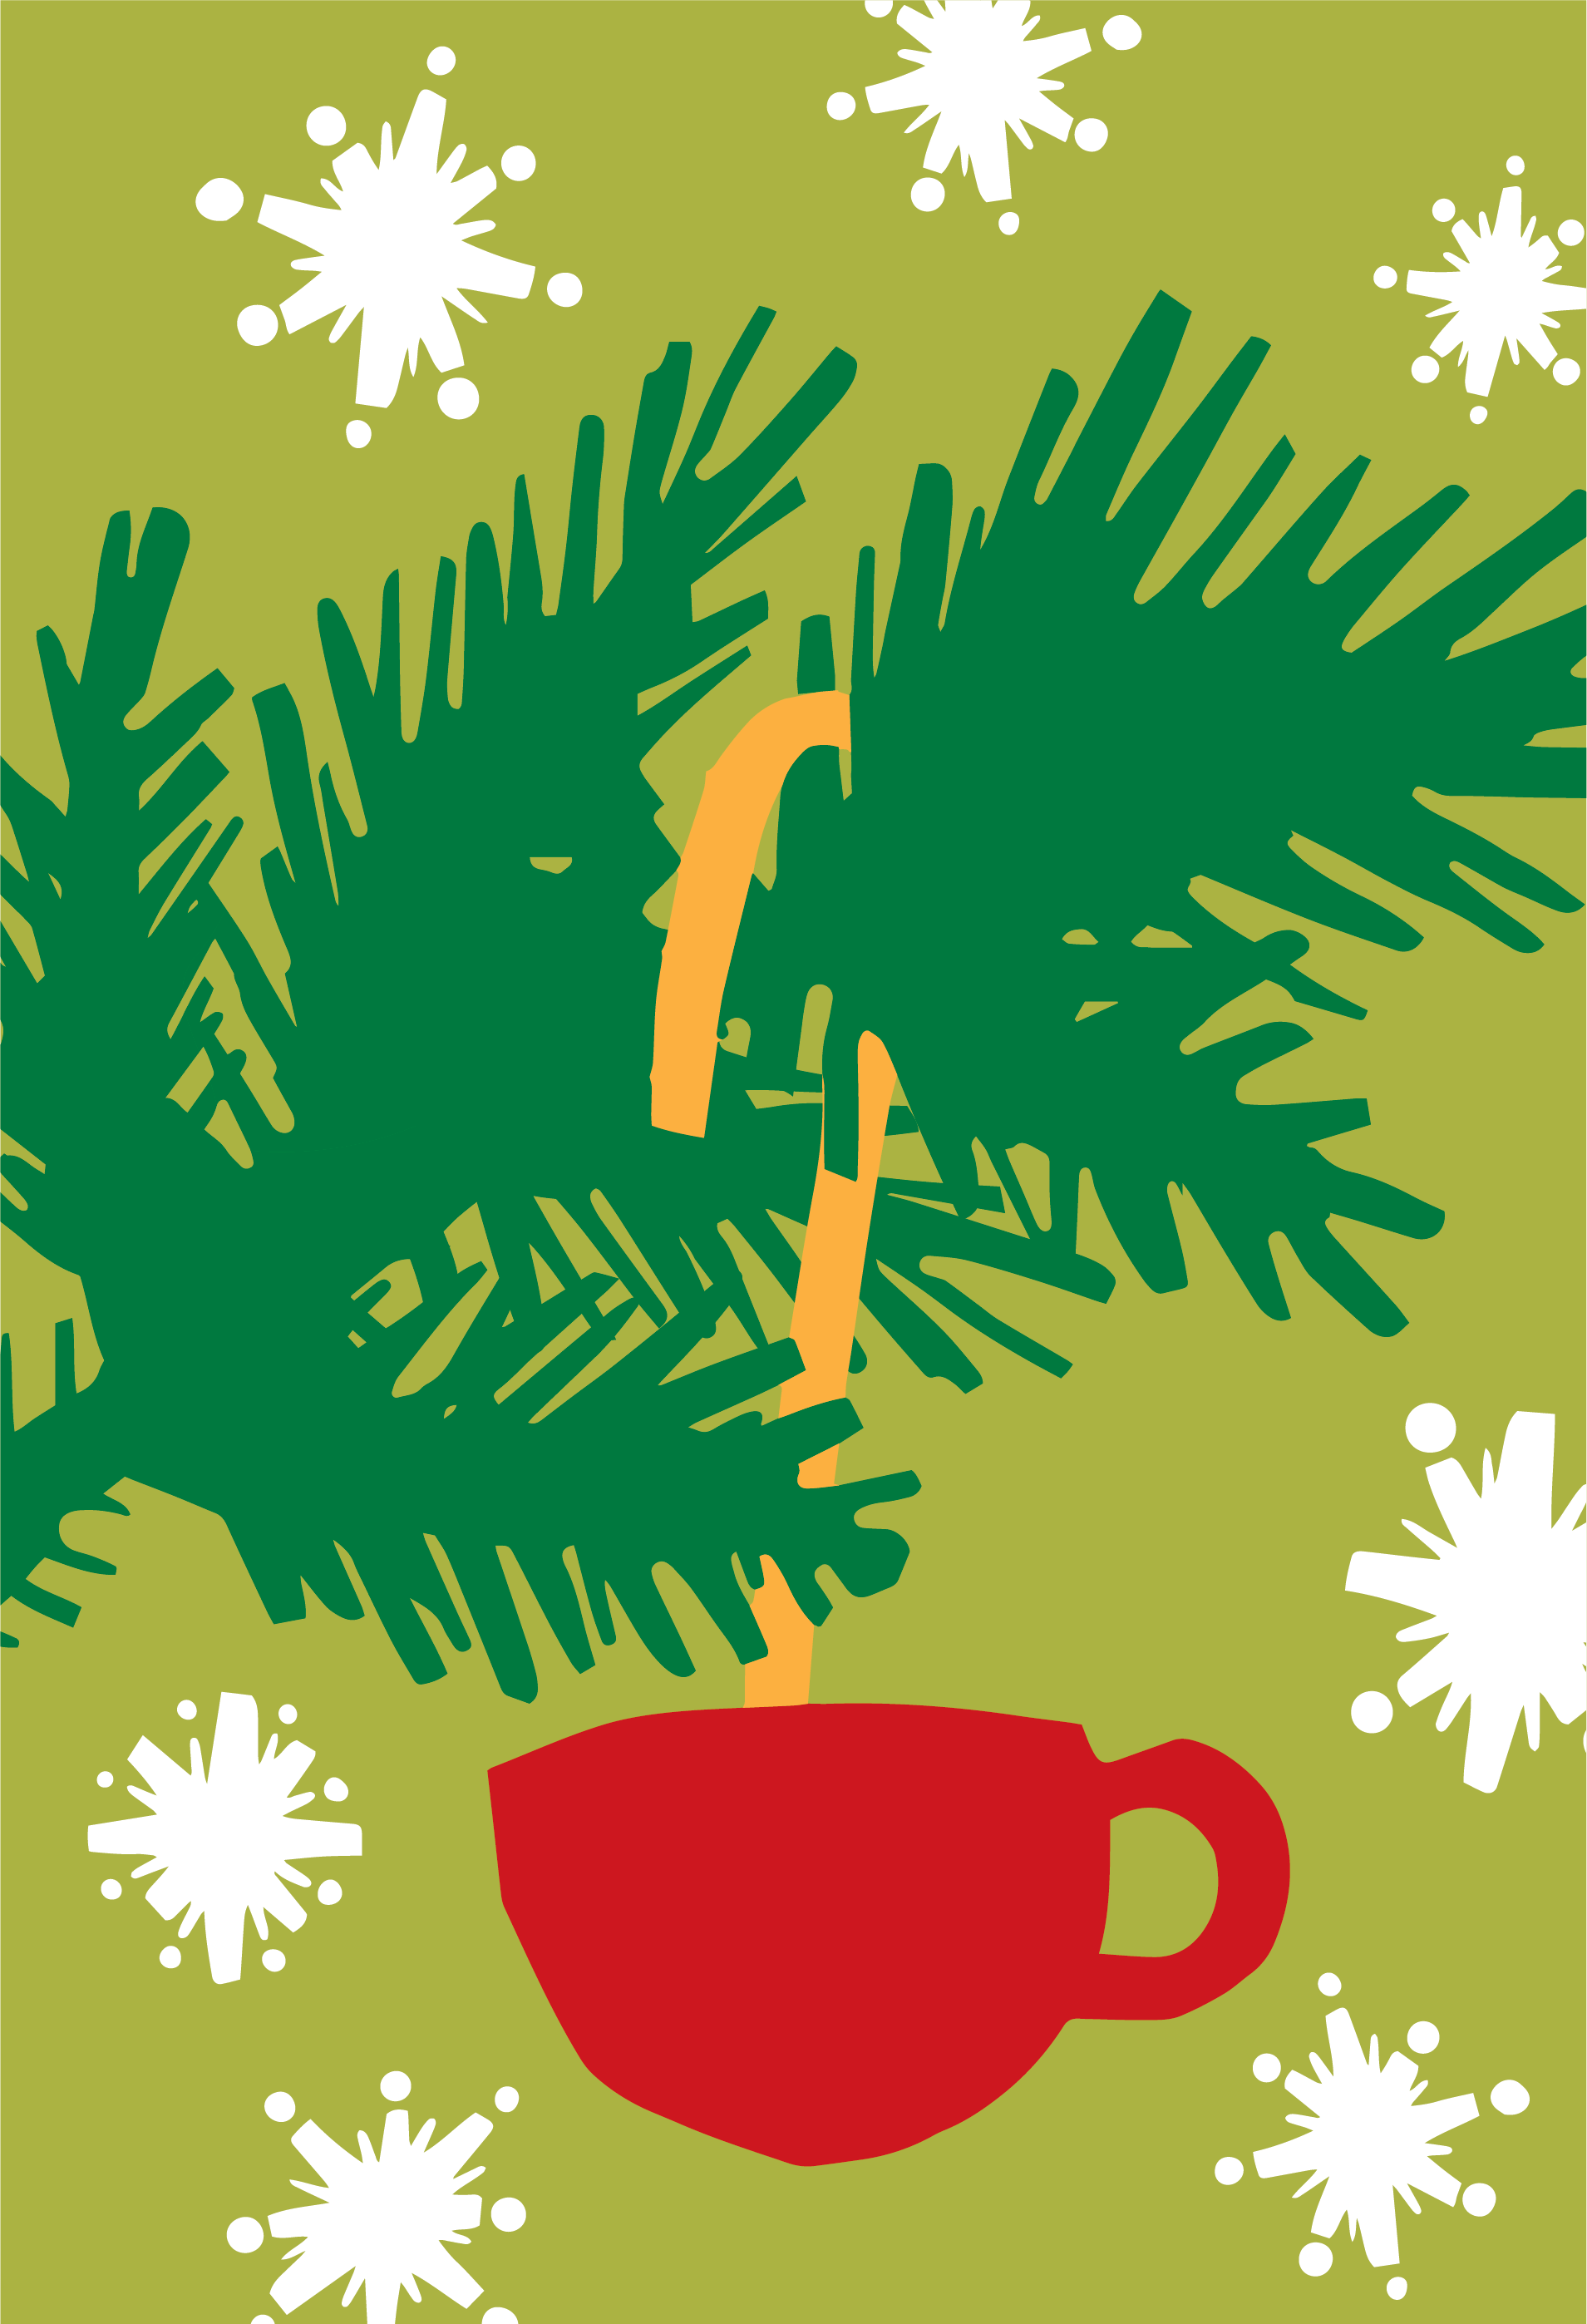 Illustration of red coffee mug ornament hanging from a Christmas tree branch